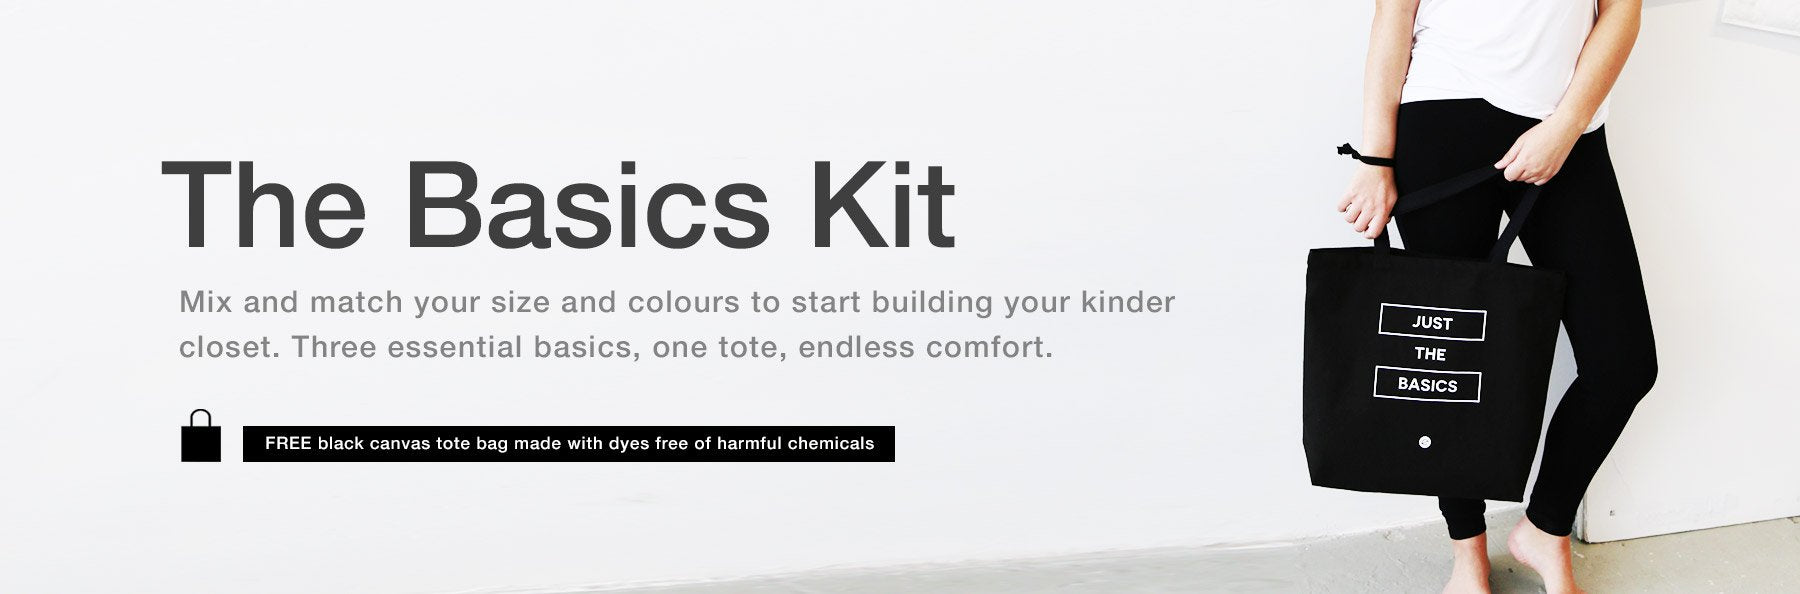 ethical fashion capsule wardrobe kit for women